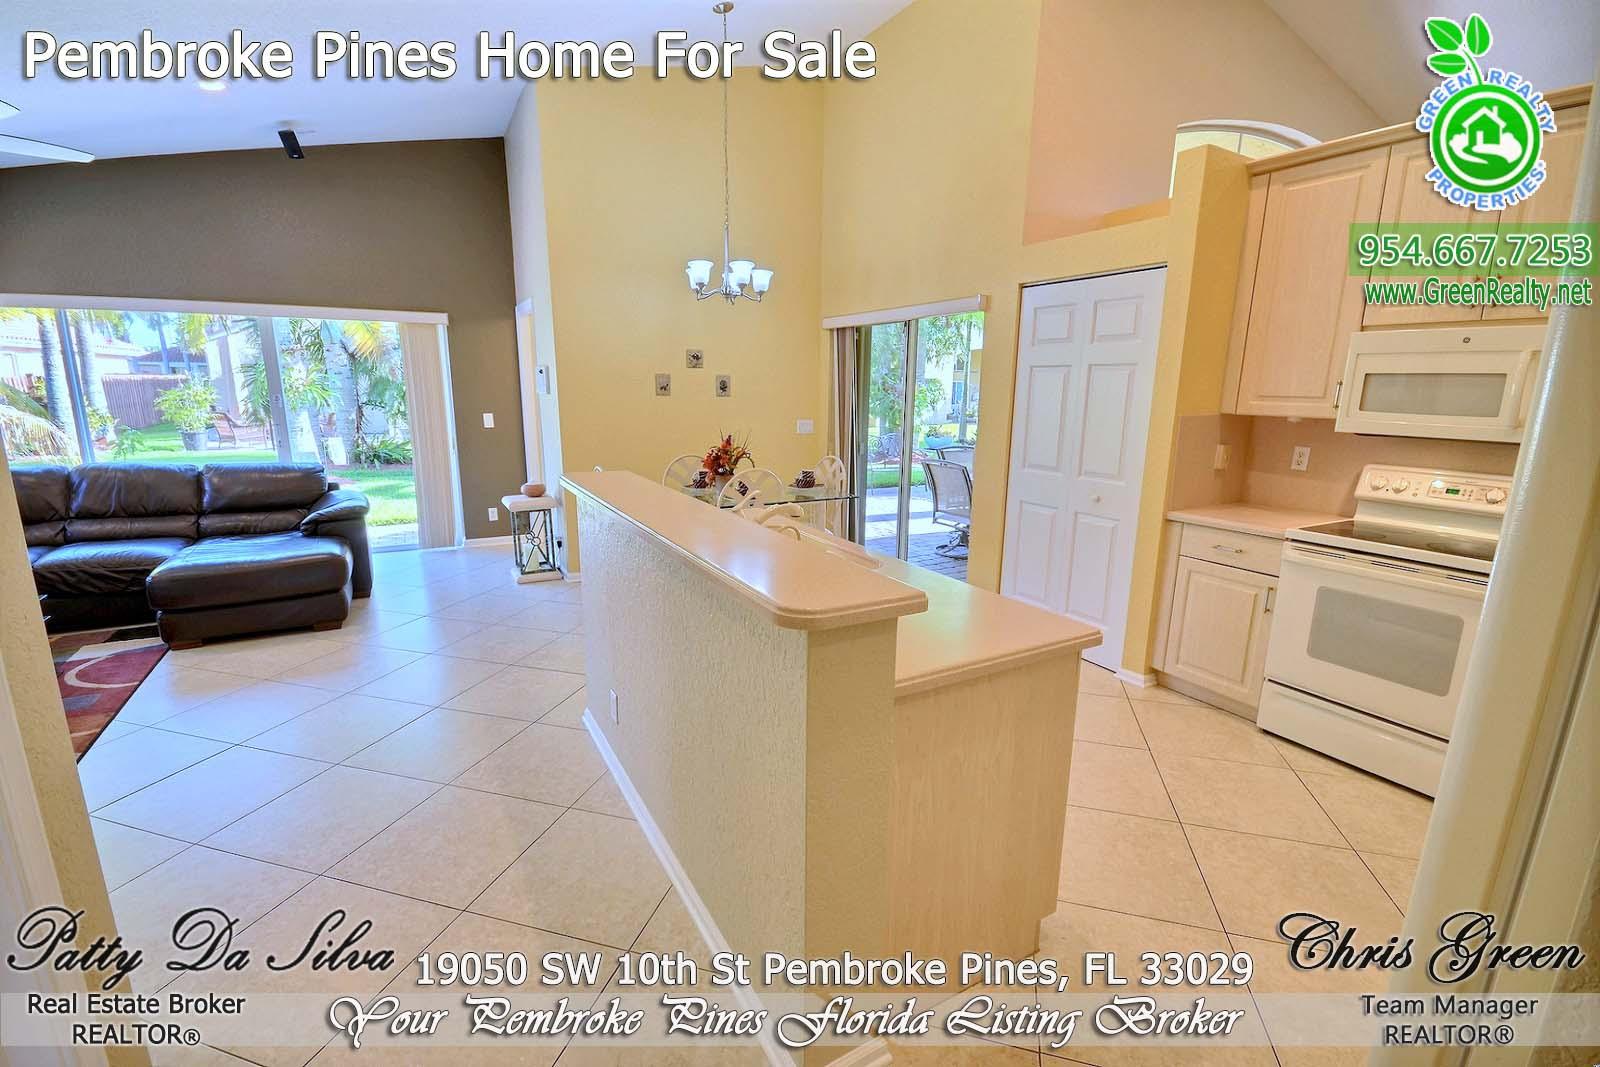 10 Real Estate in Pembroke Pines Florida (2)